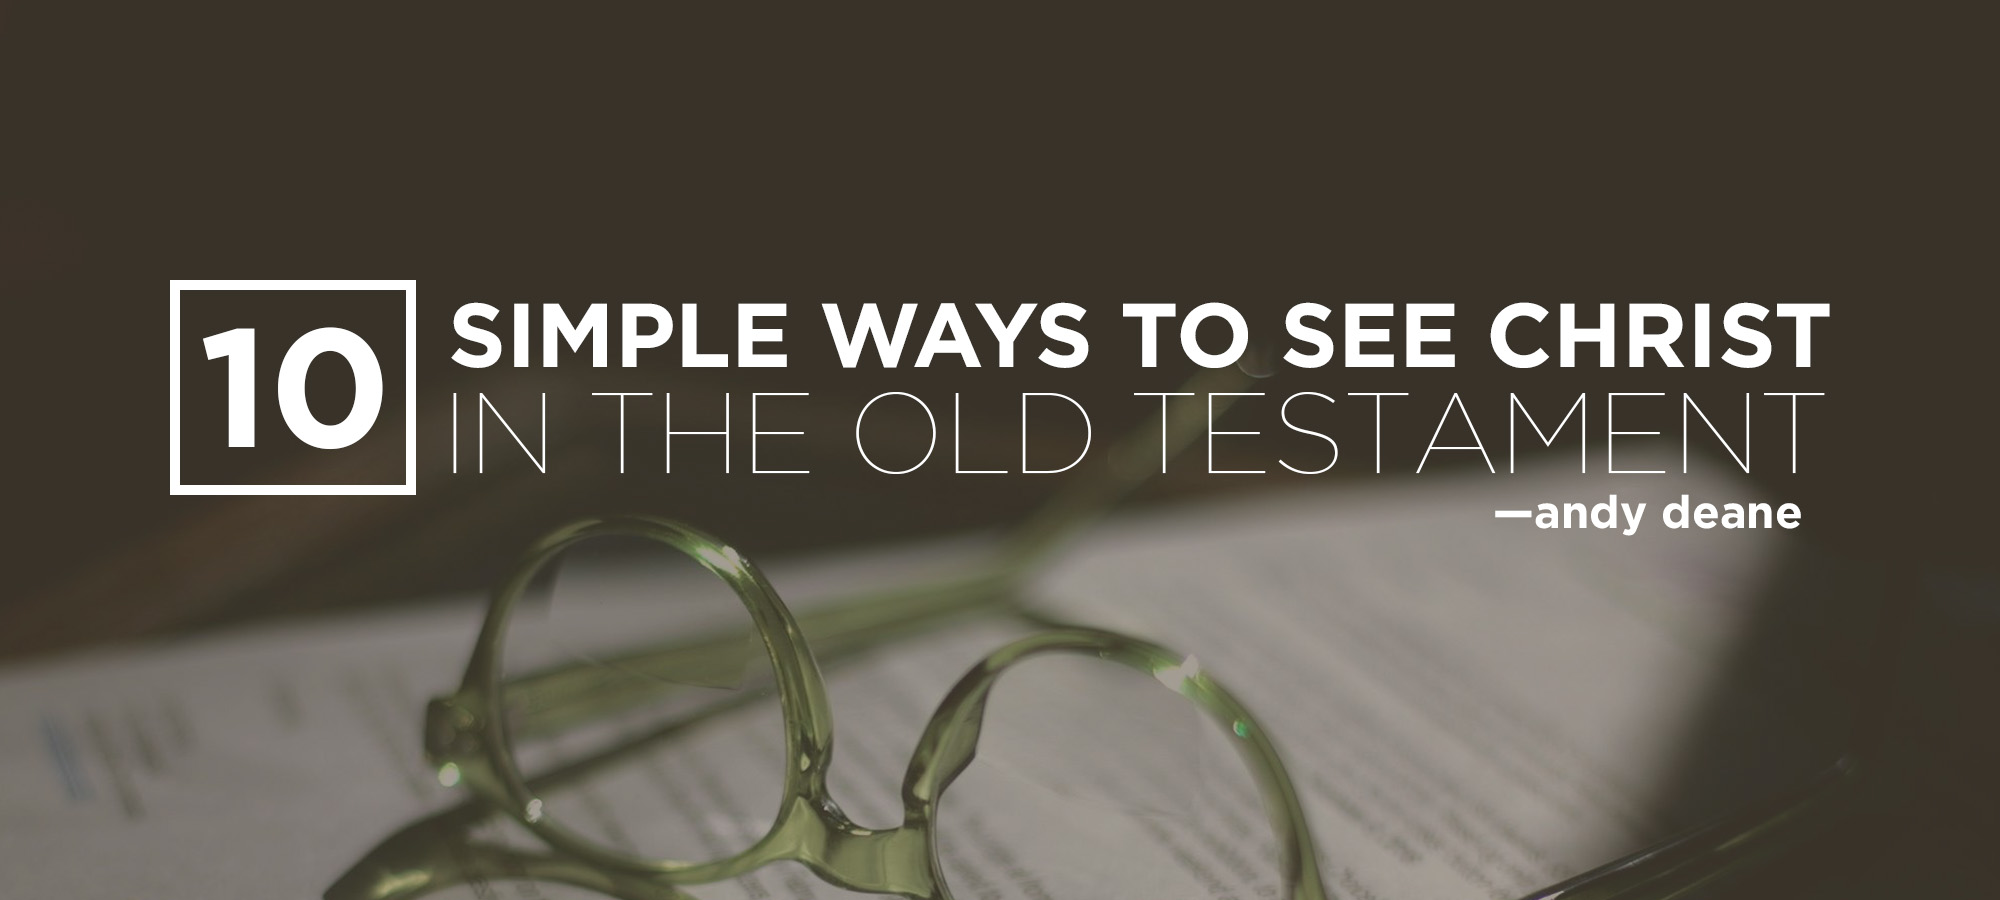 Ten Simple Ways to See Christ in the Old Testament